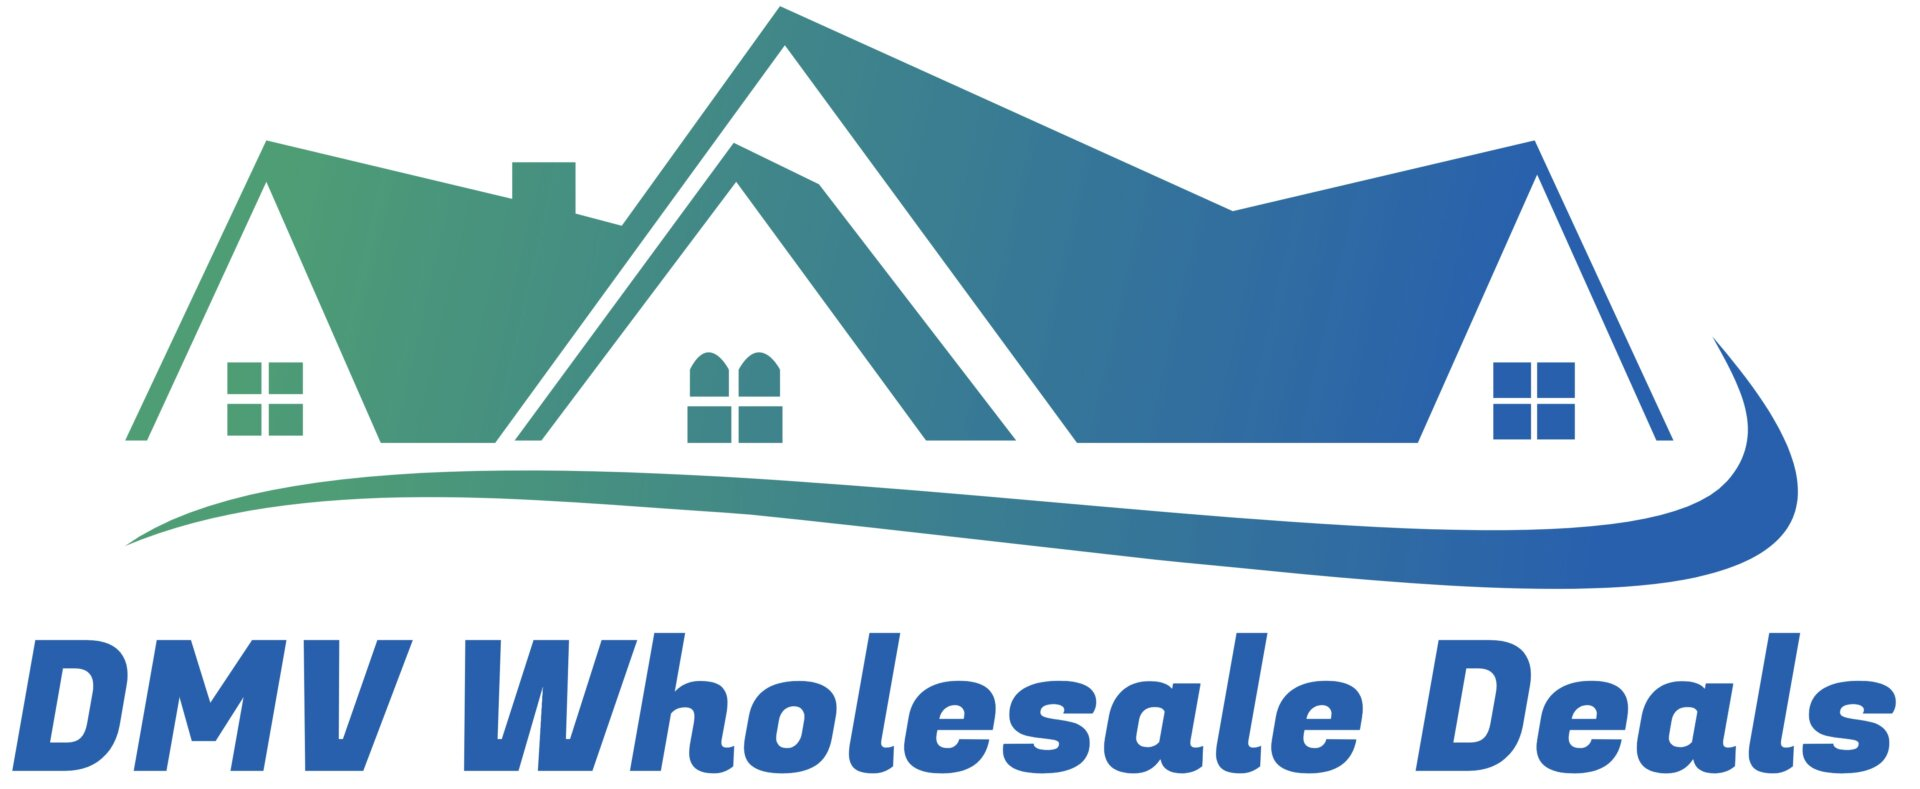 DMV Wholesale Deals logo